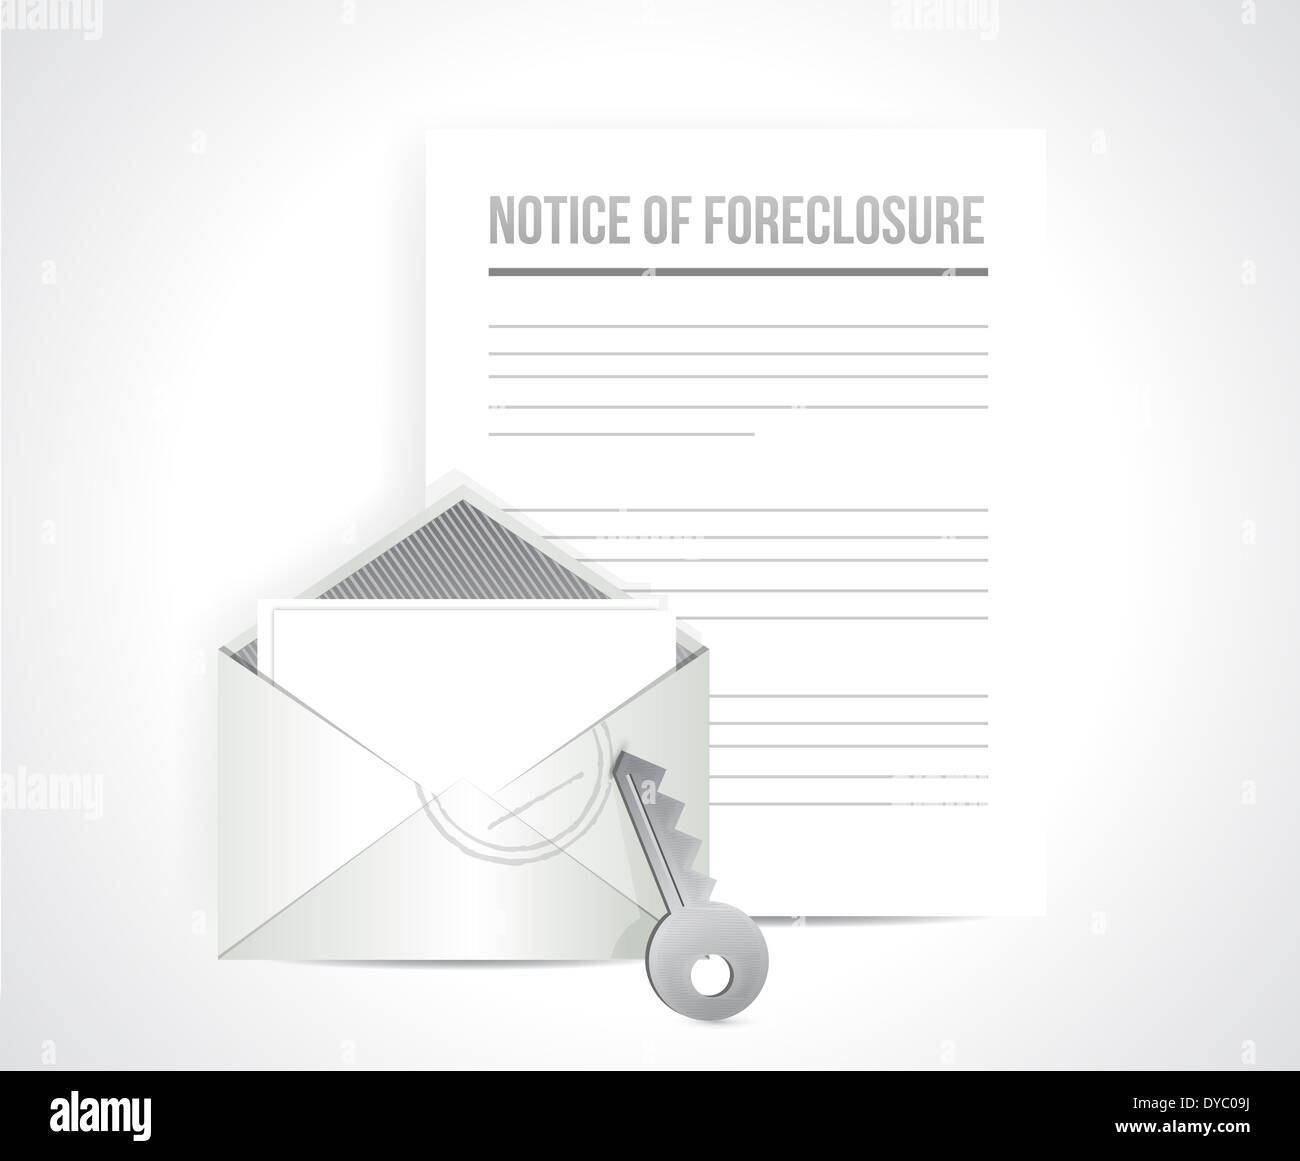 stock photo notice of foreclosure letter and envelope illustration design over white